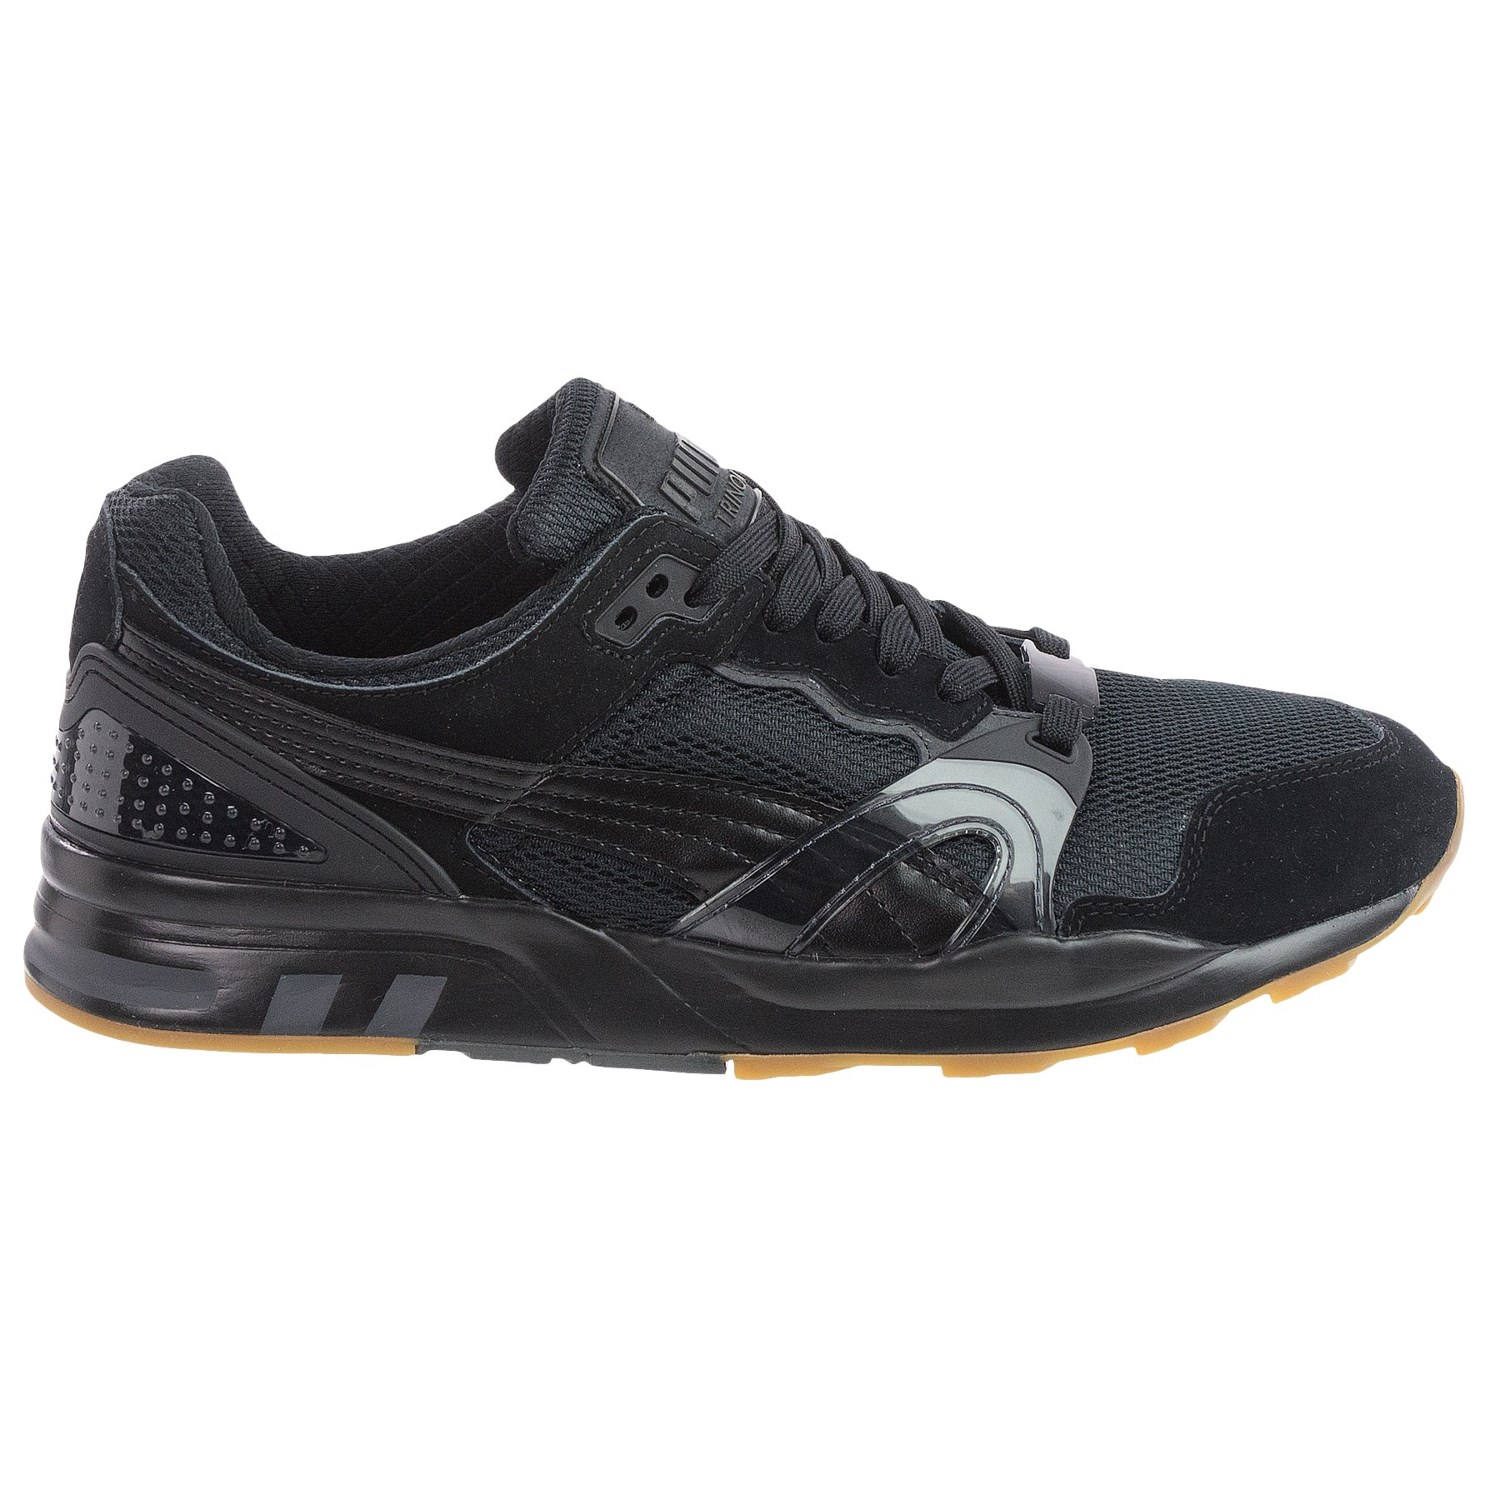 Puma Xt2 Sneakers (For Men) 9947R - Save 41%